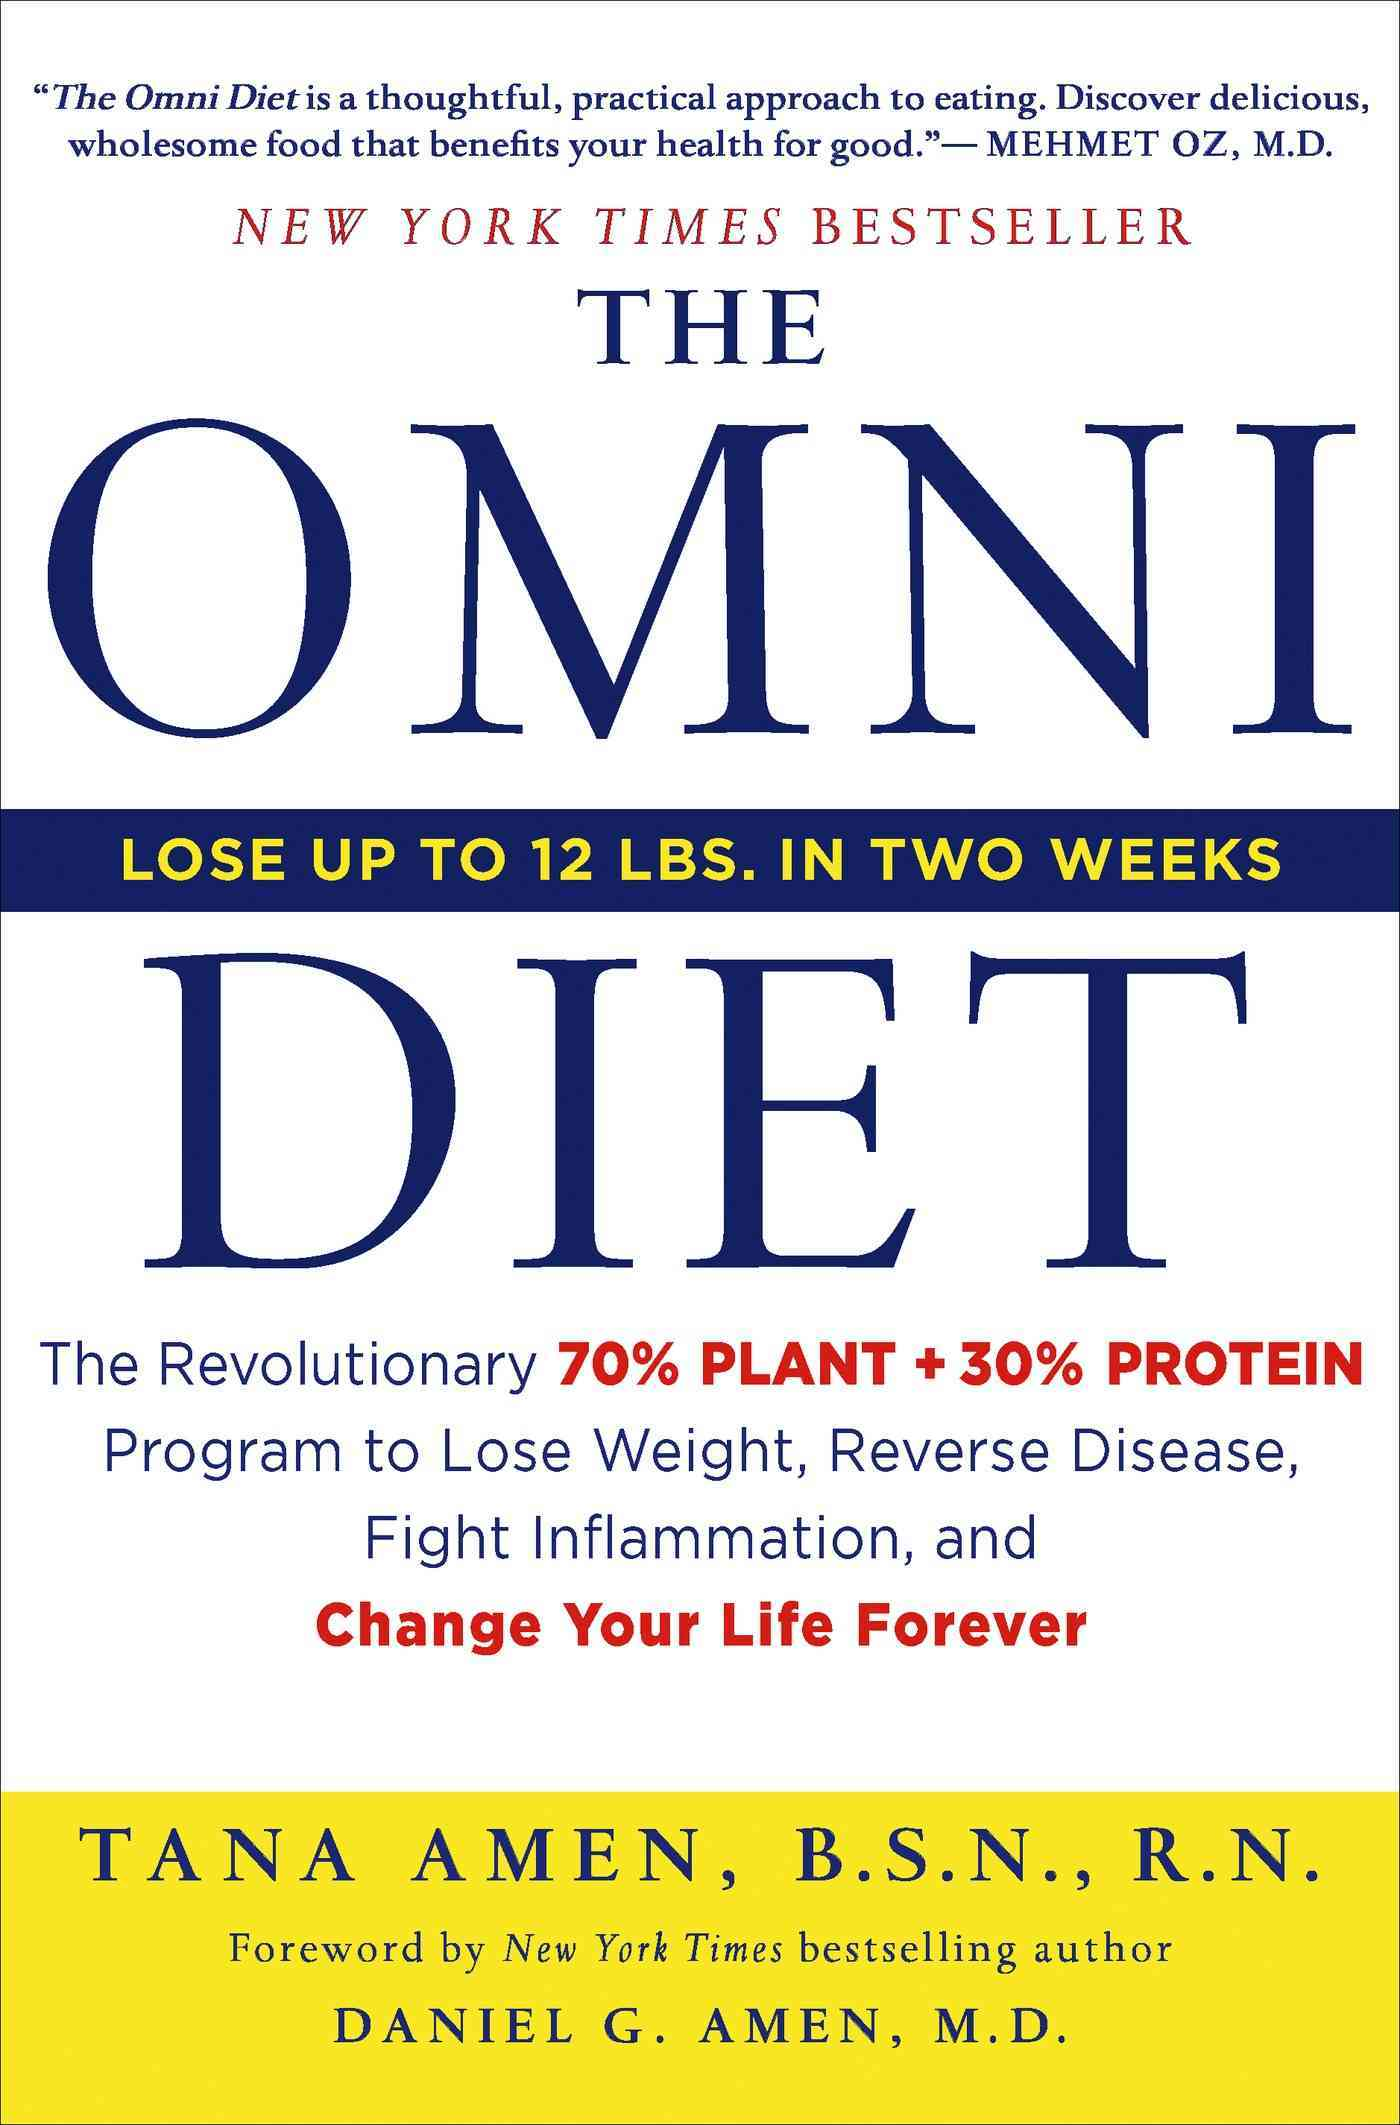 The Omni Diet: The Revolutionary 70% Plant + 30% Protein Program to Lose Weight, Reverse Disease, Fight Inflammat... (Hardcover)